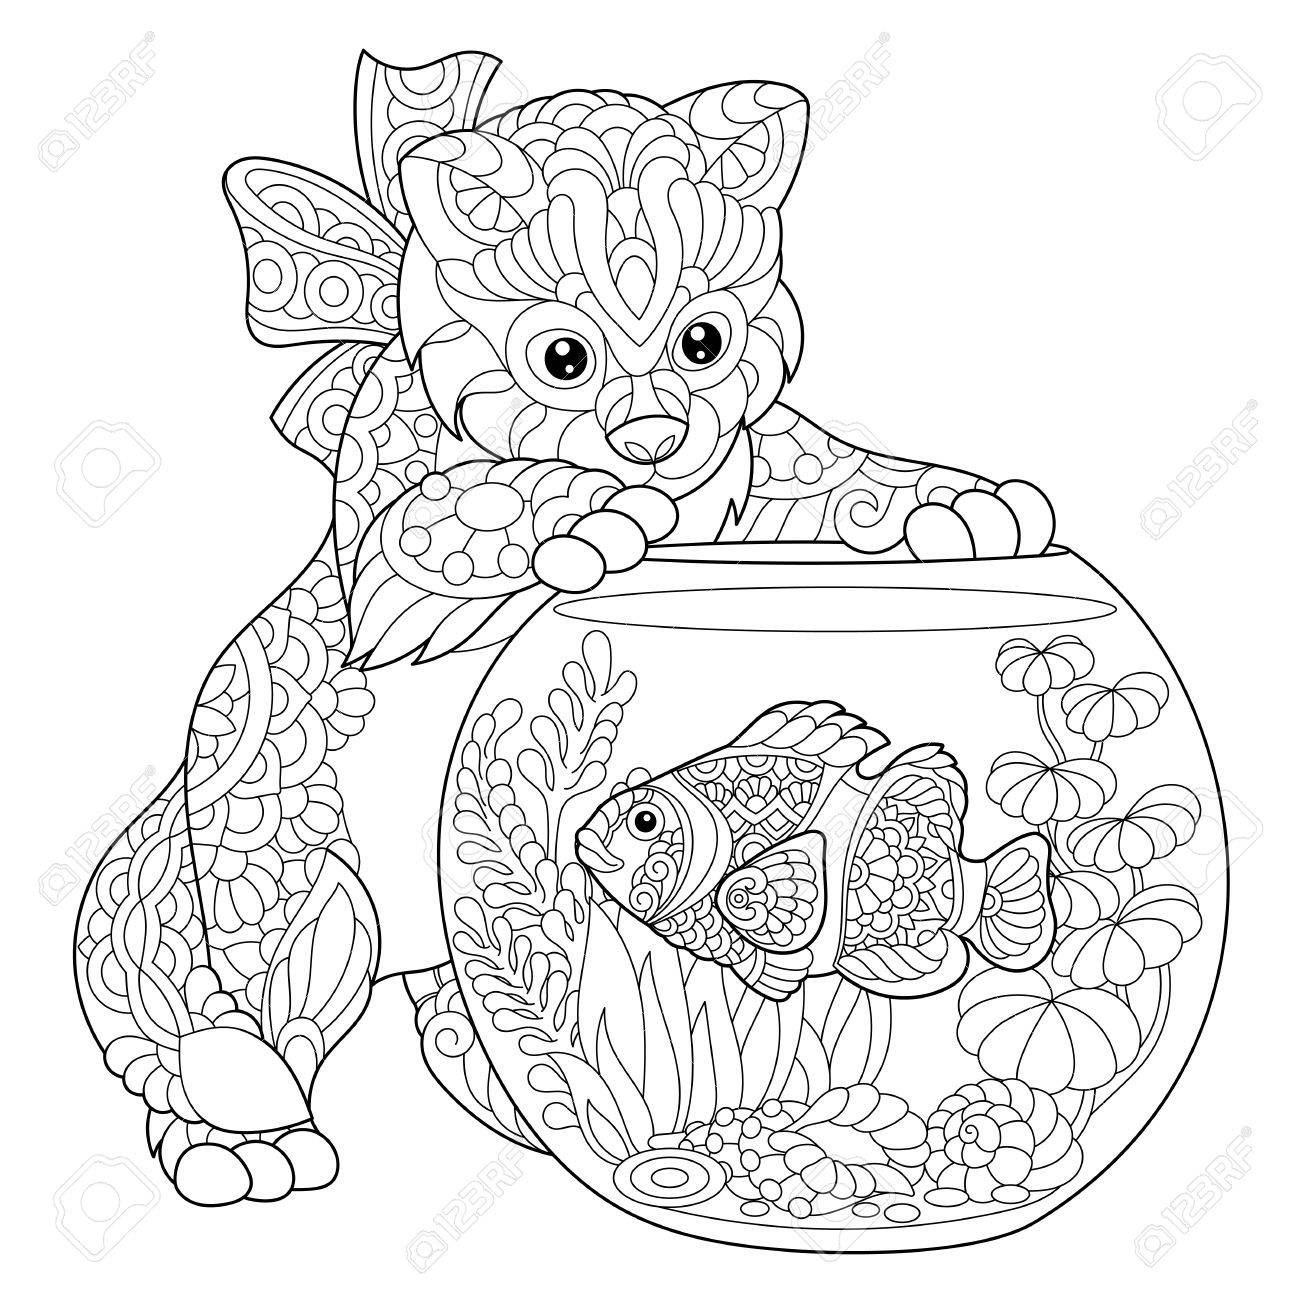 1300x1300 Coloring Page Of Kitten Playing With Clown Fish In Aquarium